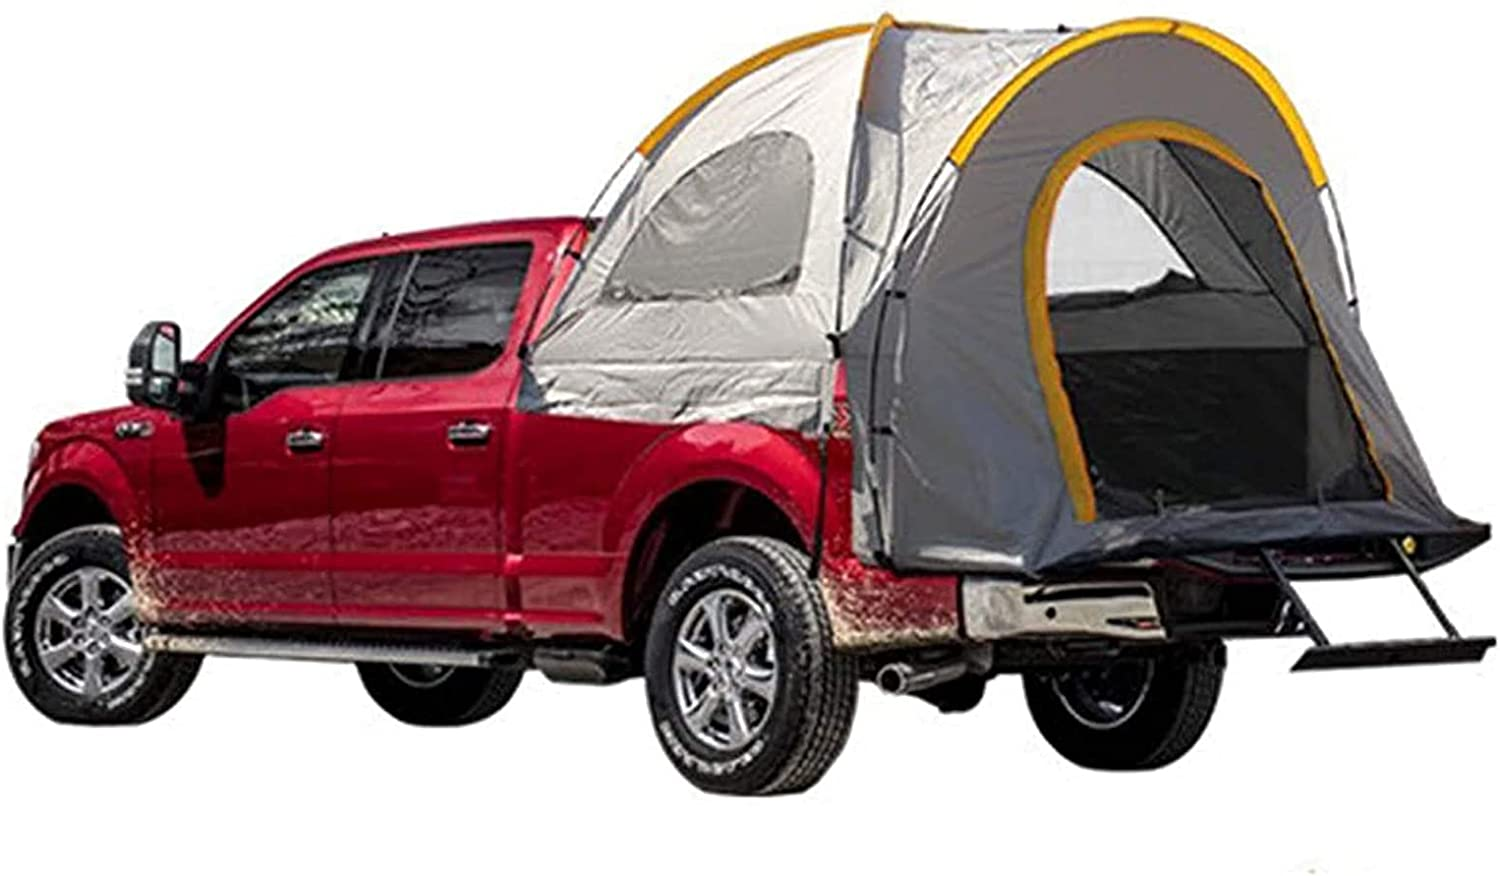 SUYUDD Truck Tent Awning 210d Oxford Bed Pu2000mm New mail order Max 53% OFF Cloth T